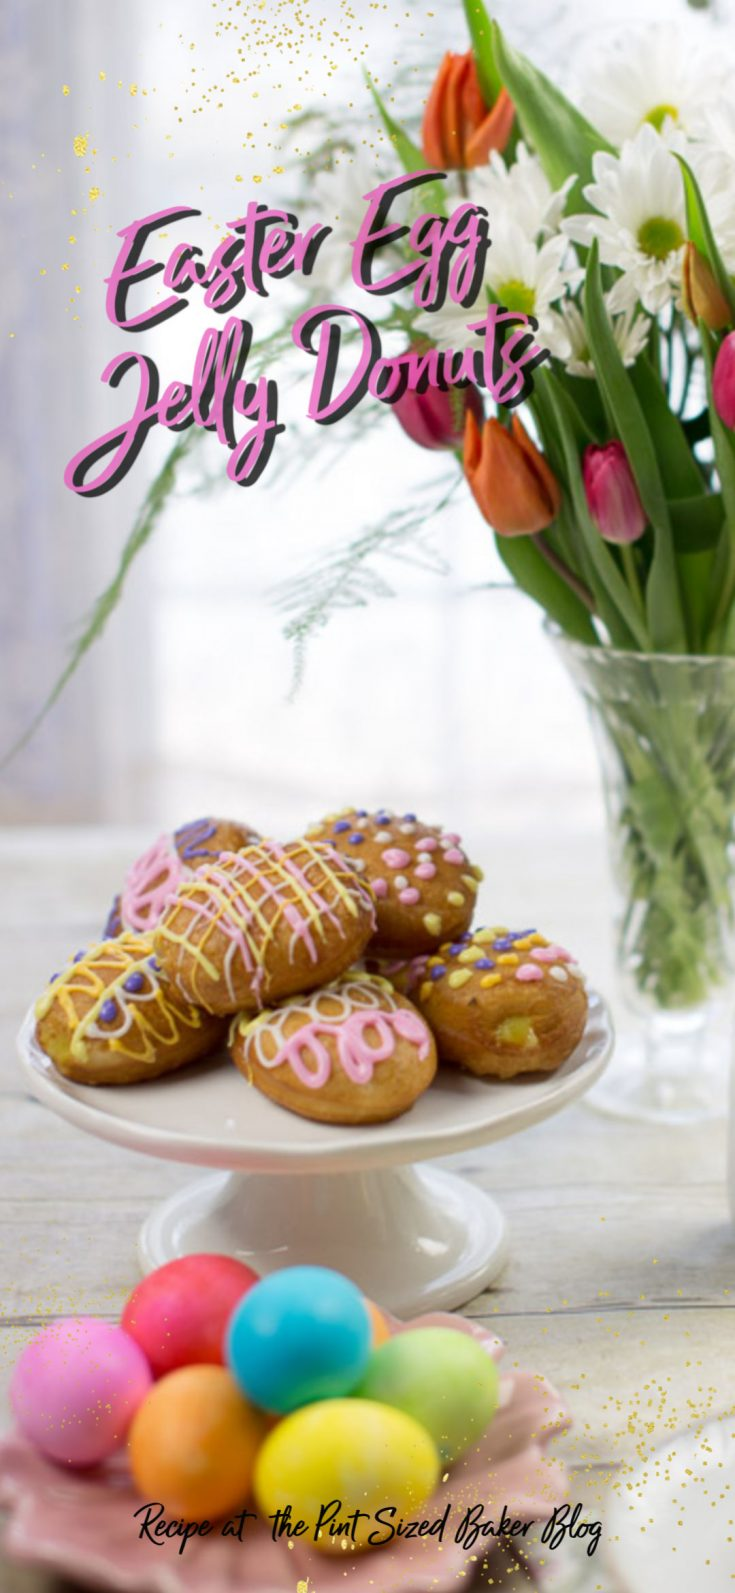 These lemon filled jelly donuts are perfect for any day of the year, but you can make them extra special for Easter by decorating them to look like an Easter egg!